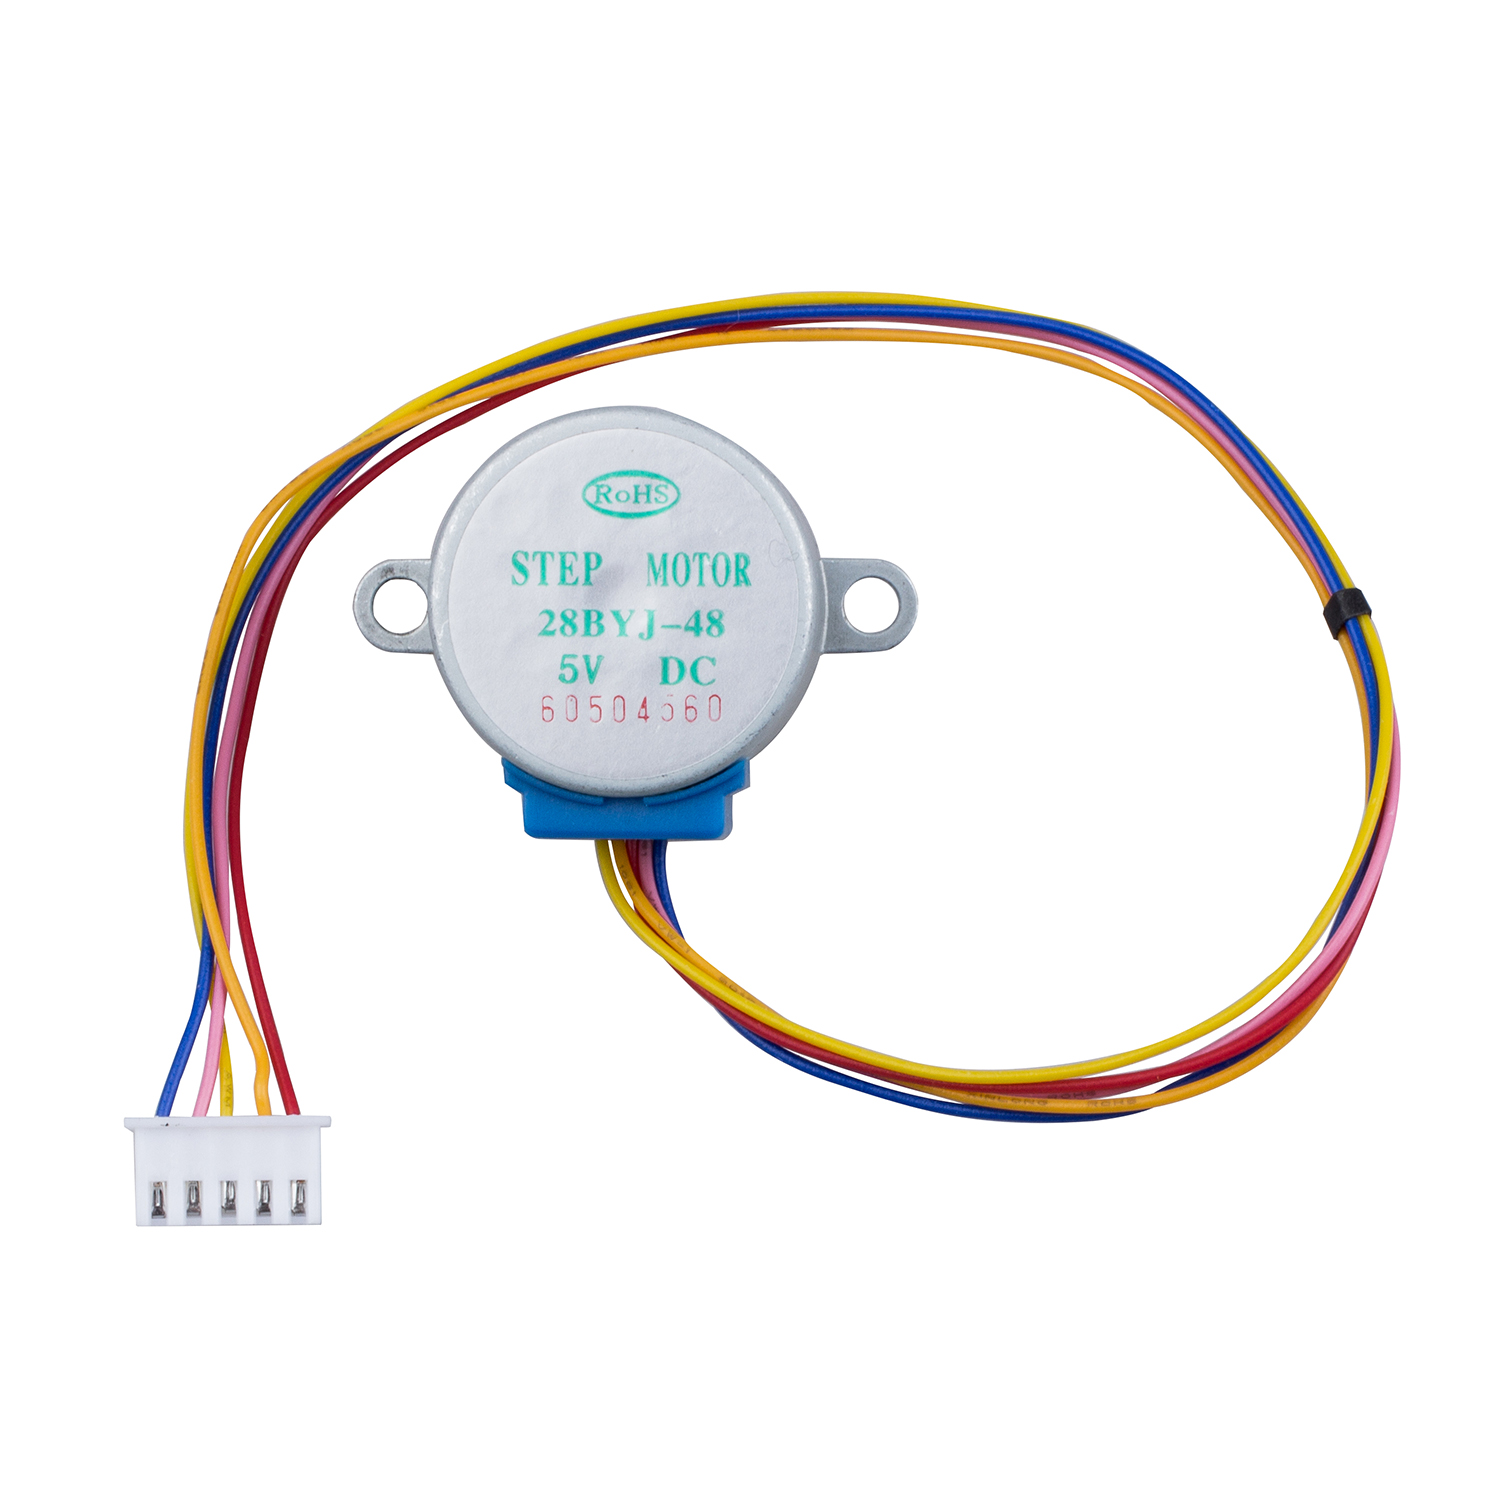 Hot Sale New 28byj 48 28byj48 Dc 5v 4 Phase 5 Wire Stepper Motor Wiring Diagram With Uln2003 Driver Board